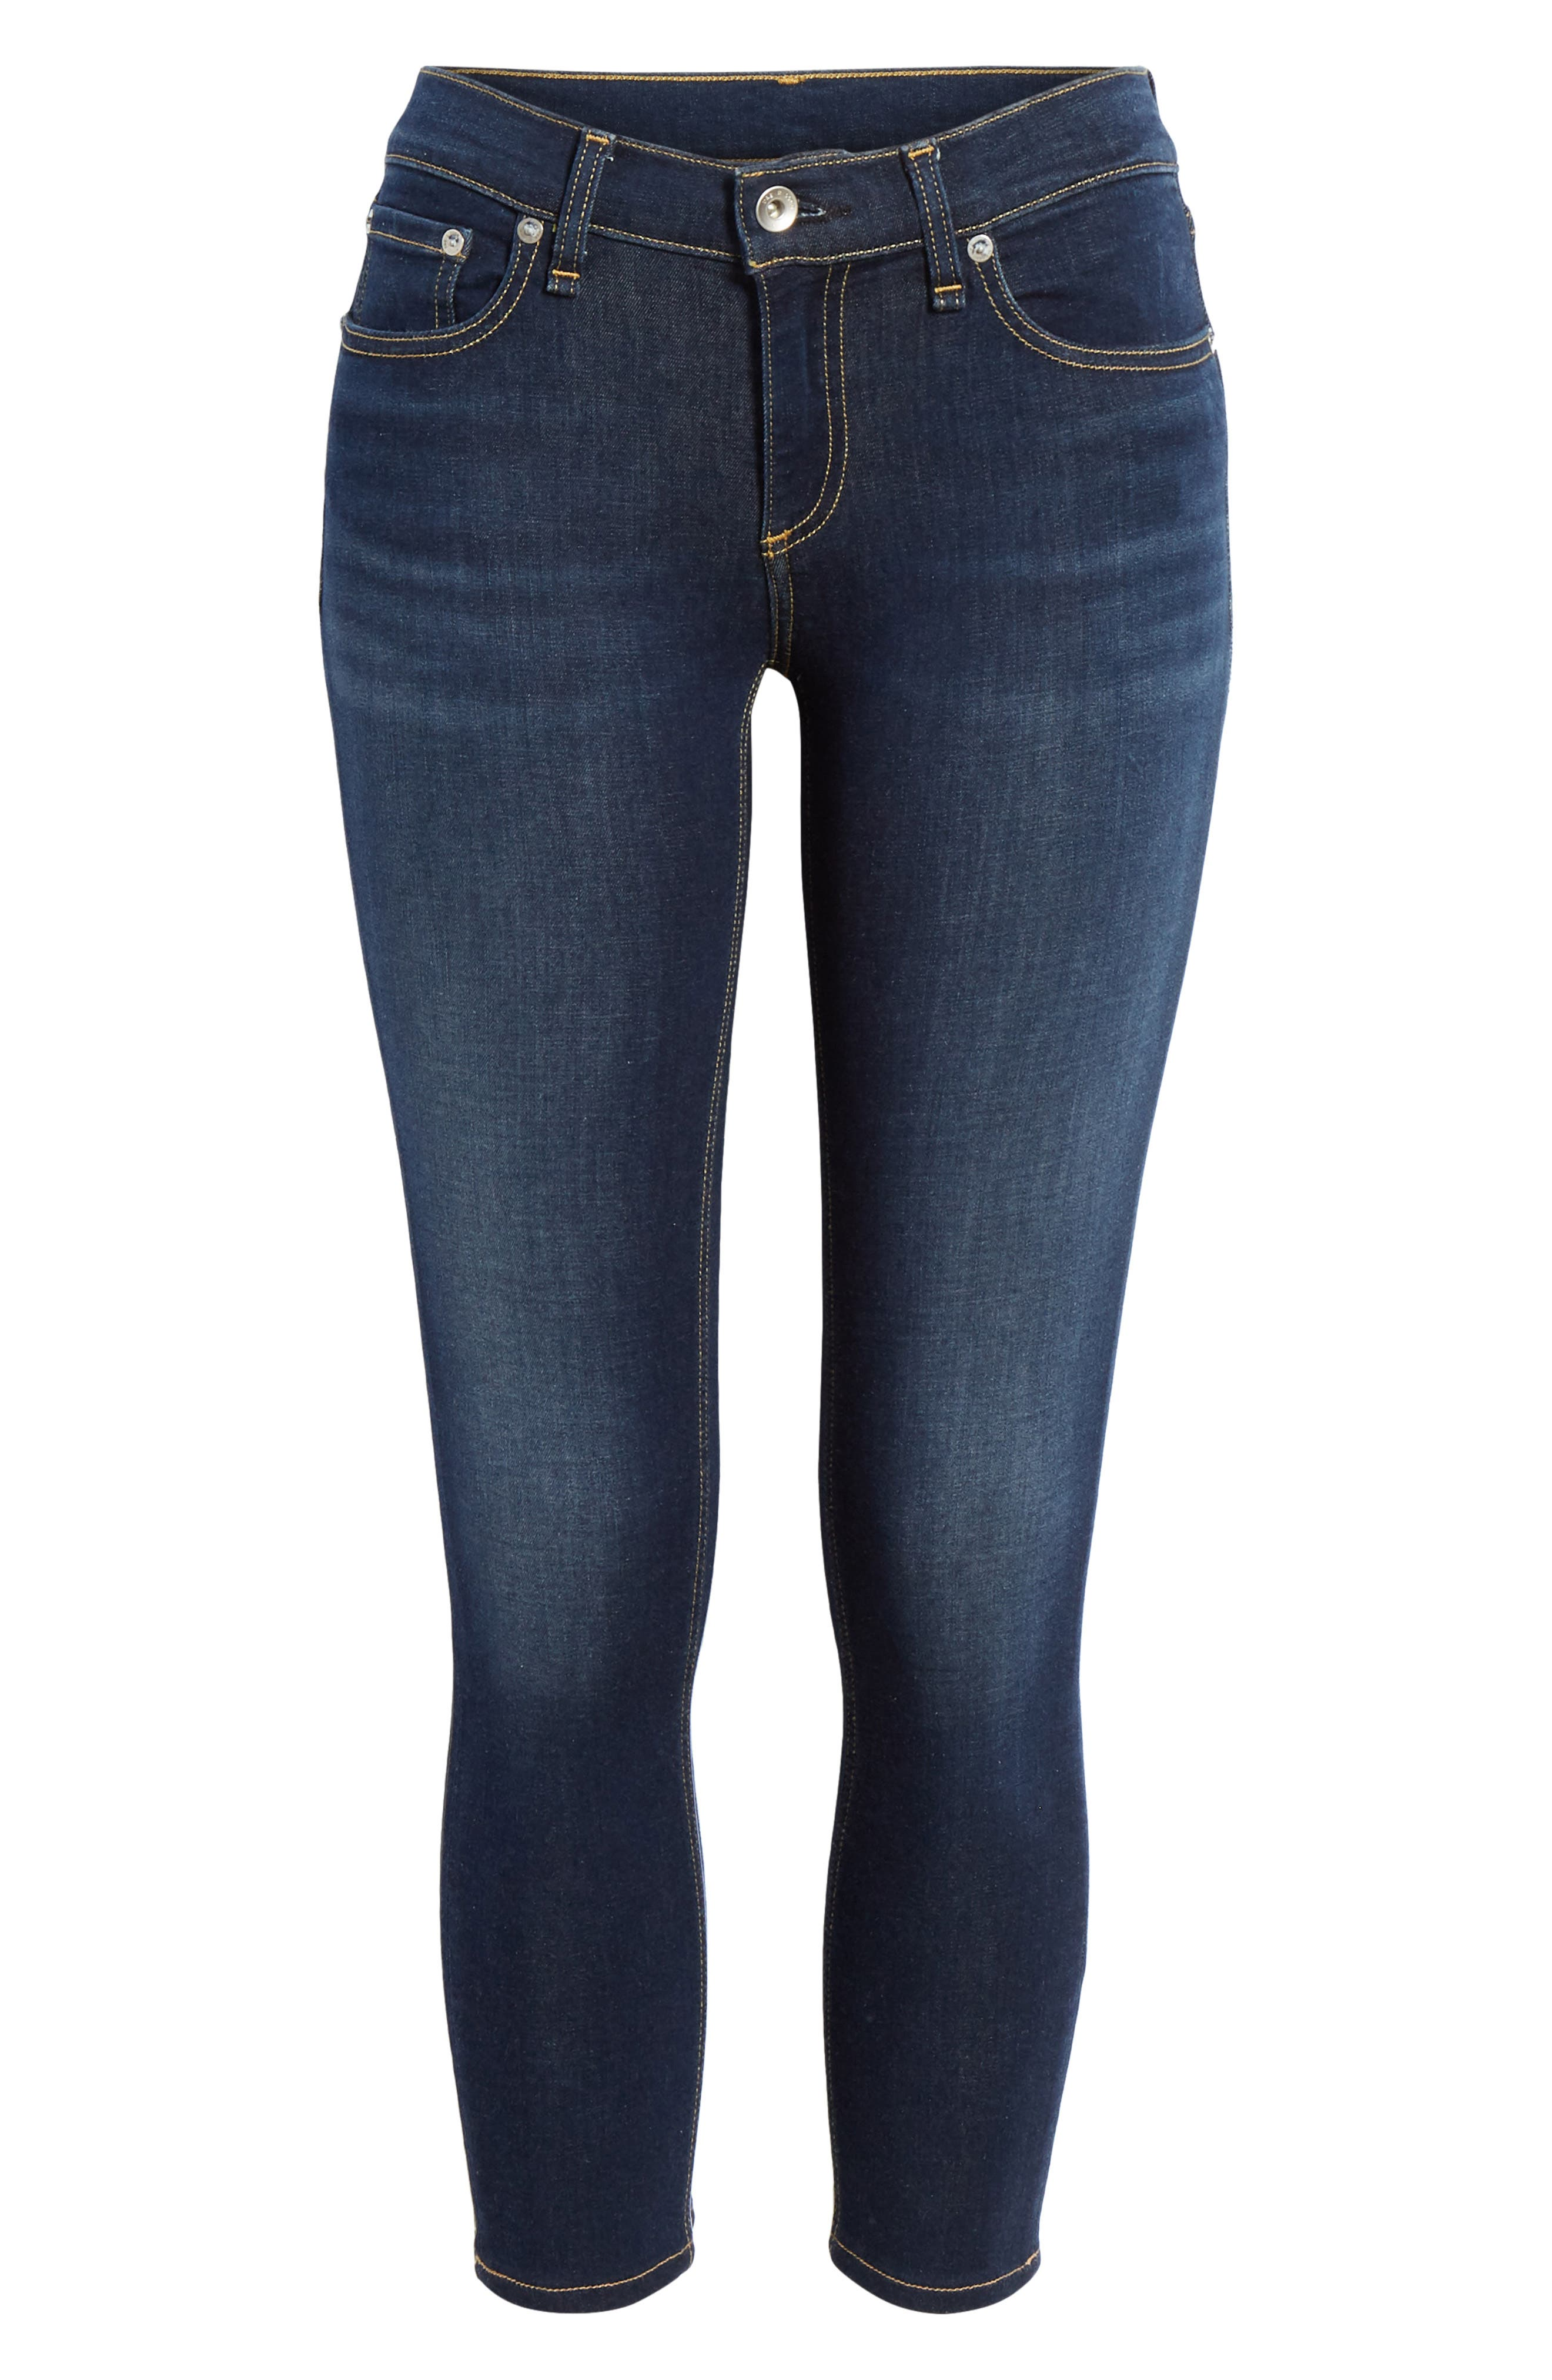 RAG & BONE, Cate Ankle Skinny Jeans, Alternate thumbnail 7, color, CARMEN